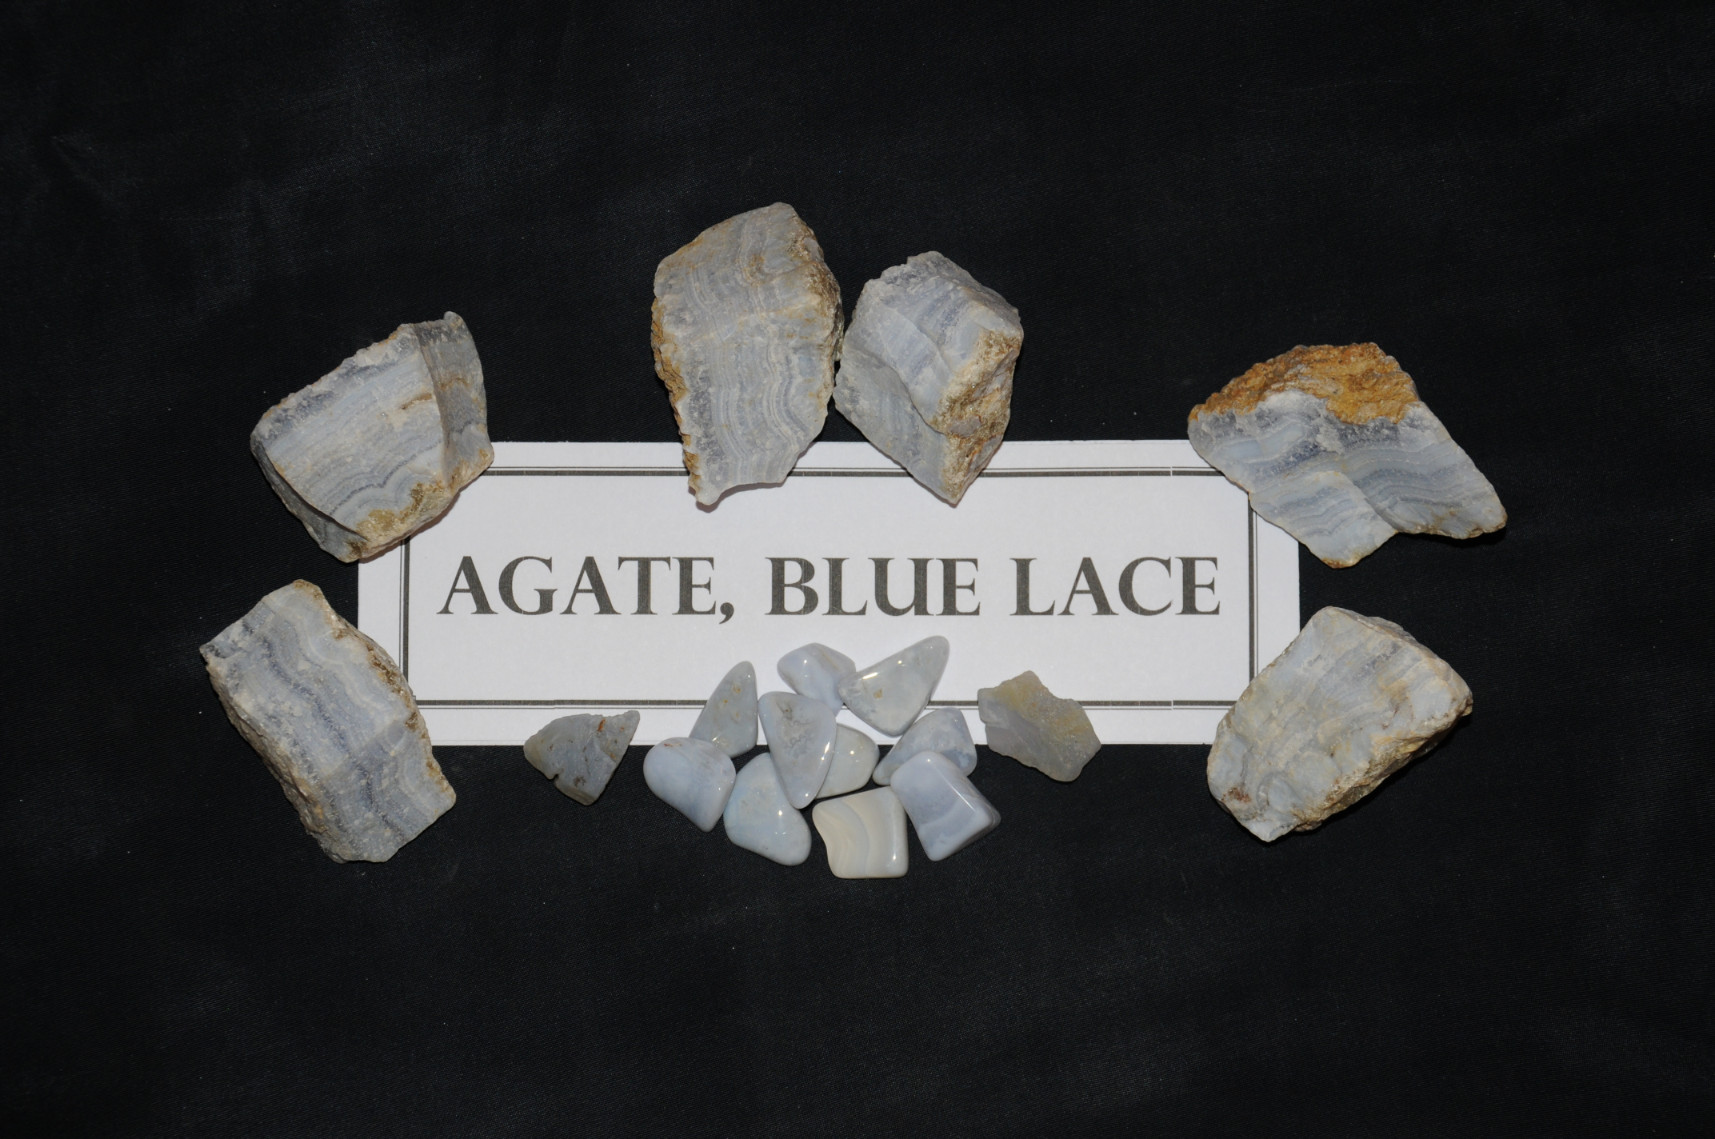 Agate, Blue Lace